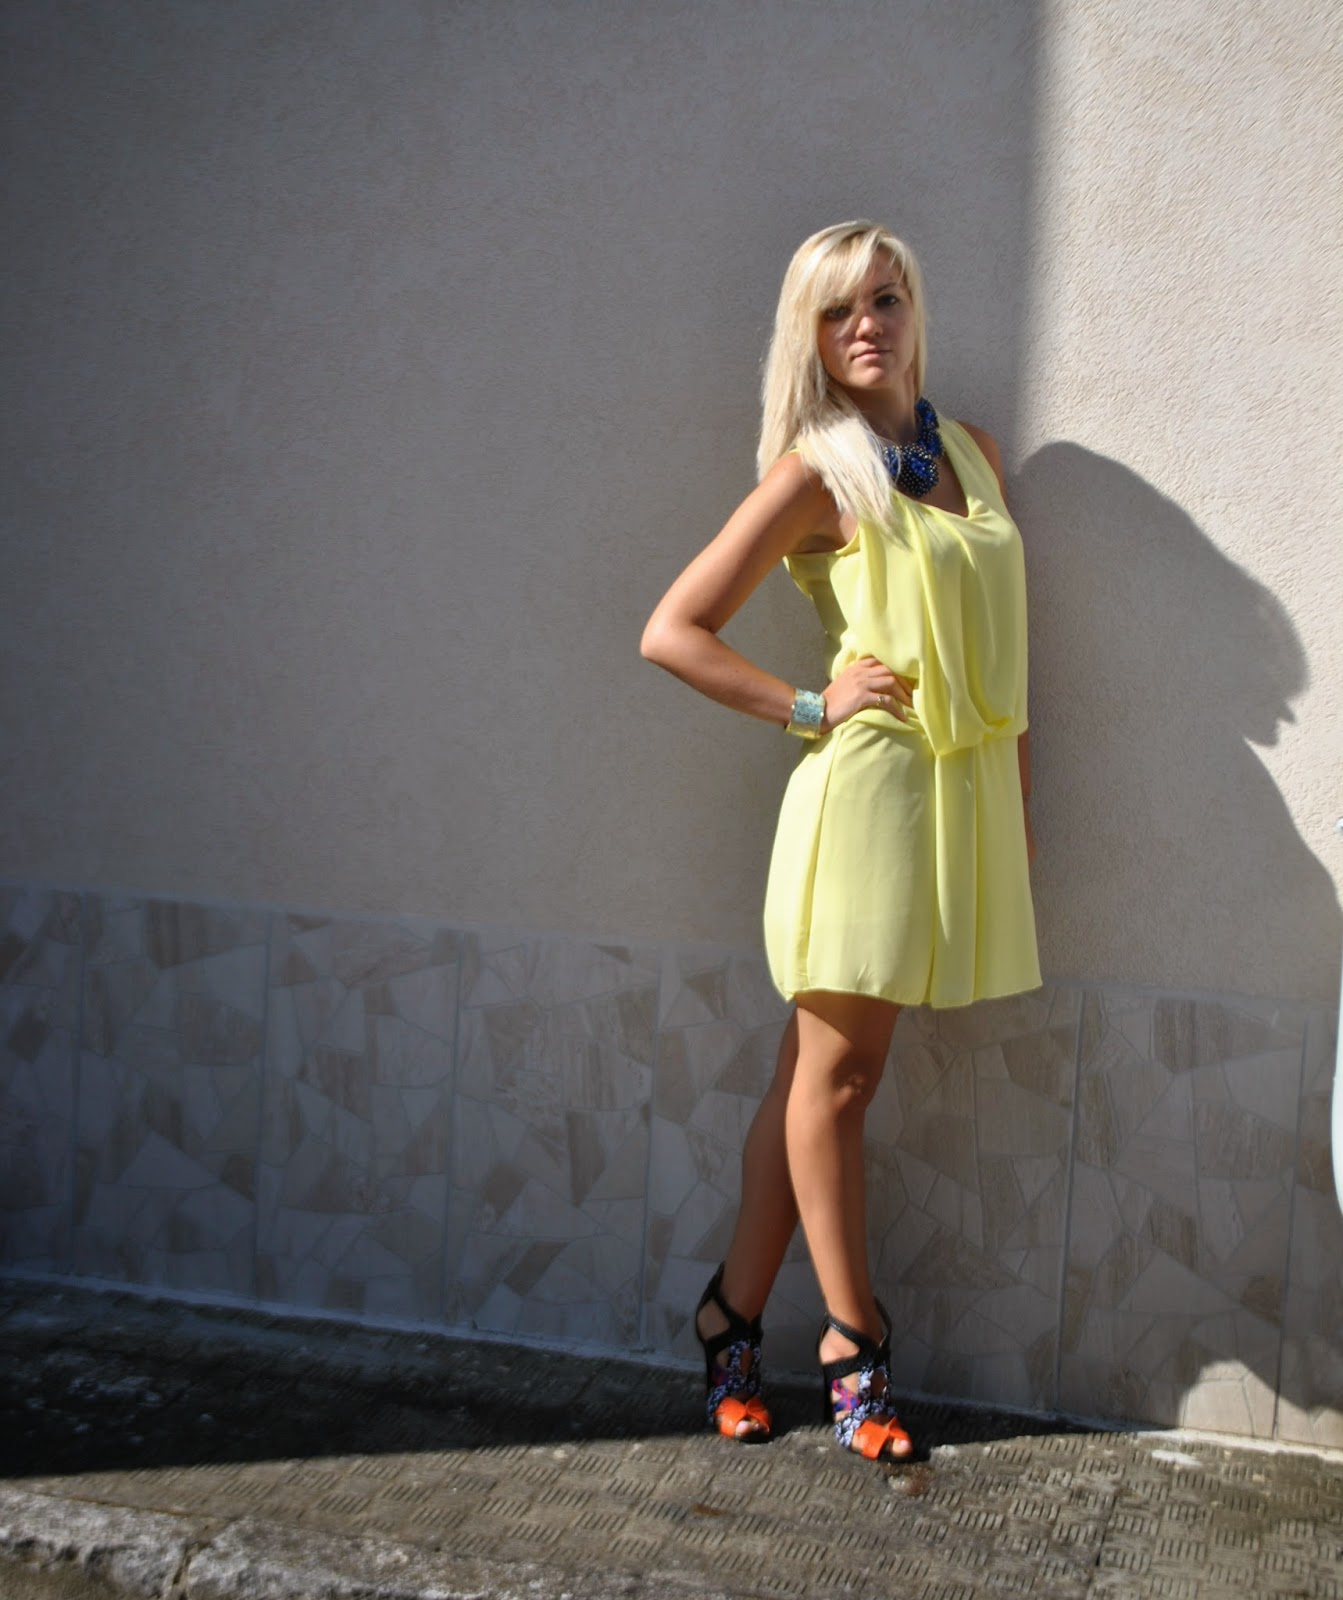 outfit abito giallo sandro ferrone collana blu majique abbinamento giallo e blu come abbinare il giallo outfit estate 2014 outfit estivi outfit agosto 2014 outfit mariafelicia magno fashion blogger di colorblock by felym outfit fashion blogger italiane fashion blogger bionde fblogger lookbook street style moda colorblock by felym mariafelicia magno sandali pimkie milano collana blu come abbinare la collana blu maxi collana how to wear yellow dress how to wear maxi necklace majique necklace abito scollo a v come abbinare un abito con scollo a v